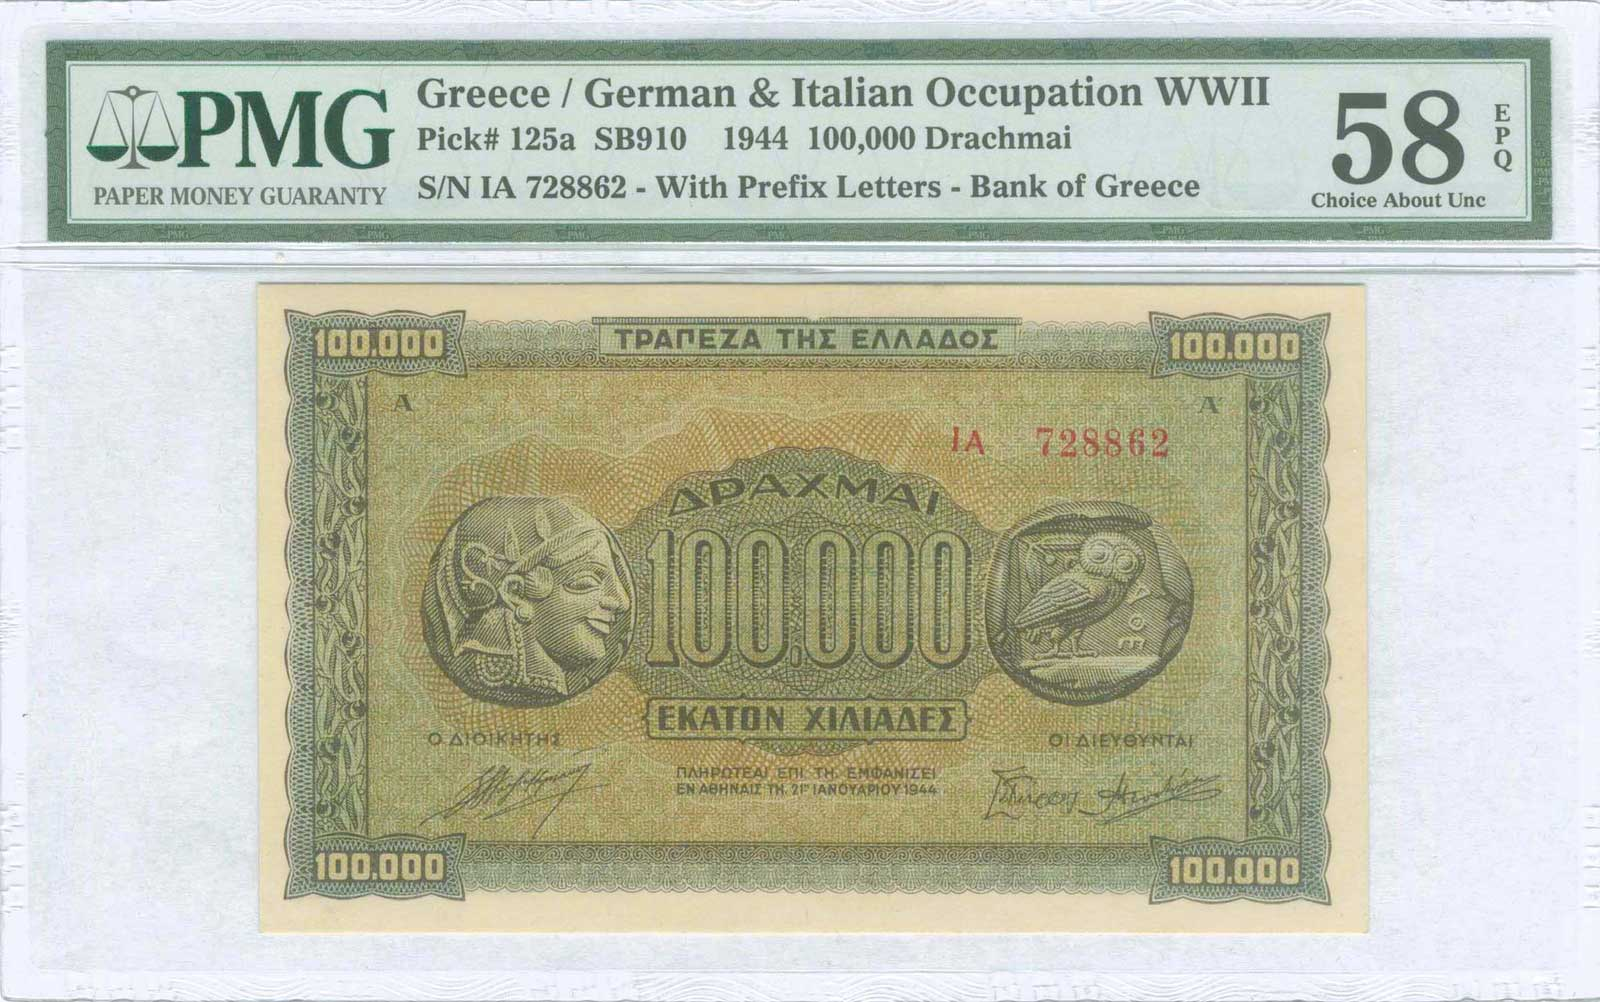 Lot 9328 - GREECE-  PAPER MONEY - BANKNOTES WWII  issued  banknotes -  A. Karamitsos Public & LIVE Bid Auction 610 Coins, Medals & Banknotes